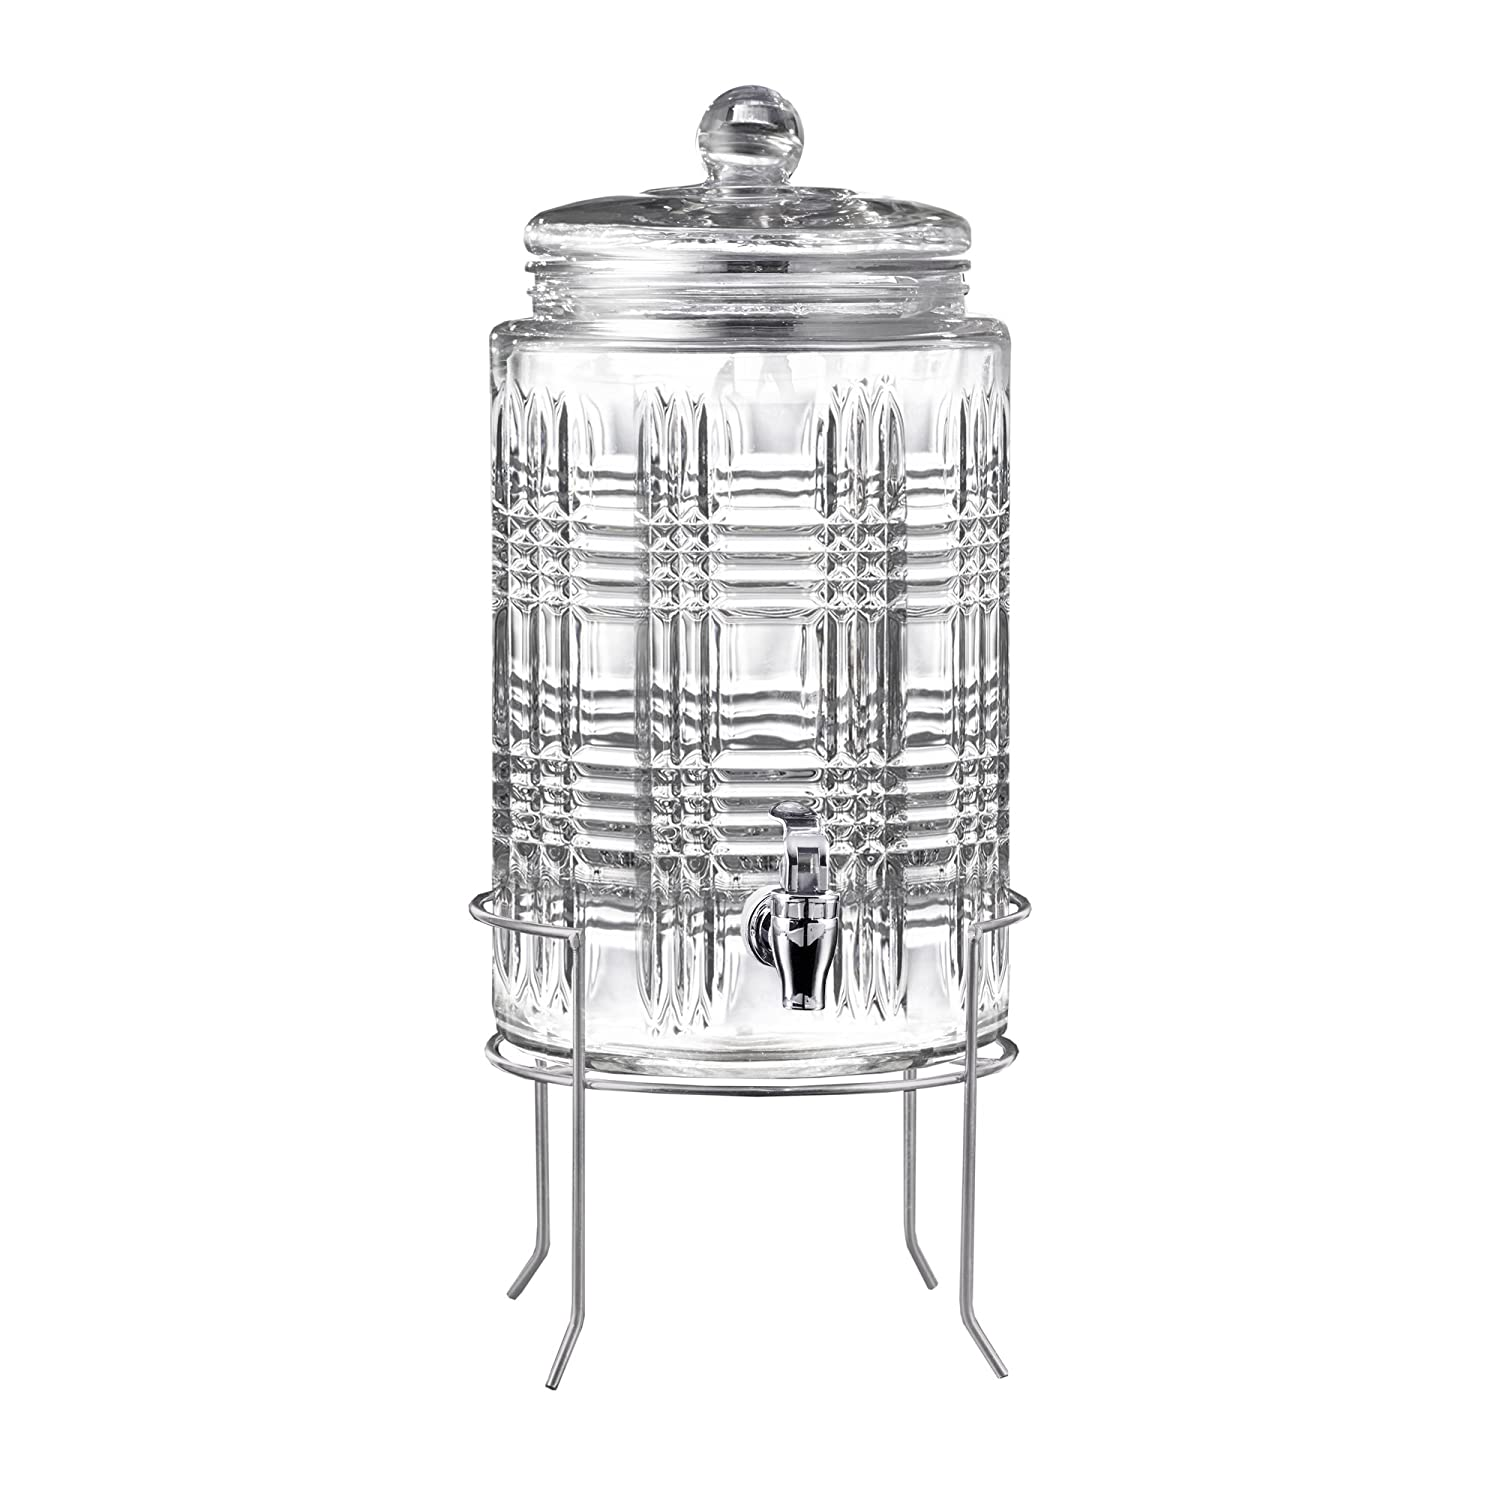 Amazon.com: Fitz and Floyd Portland 2 Gallon Beverage Dispenser With Silver Stand: Kitchen & Dining